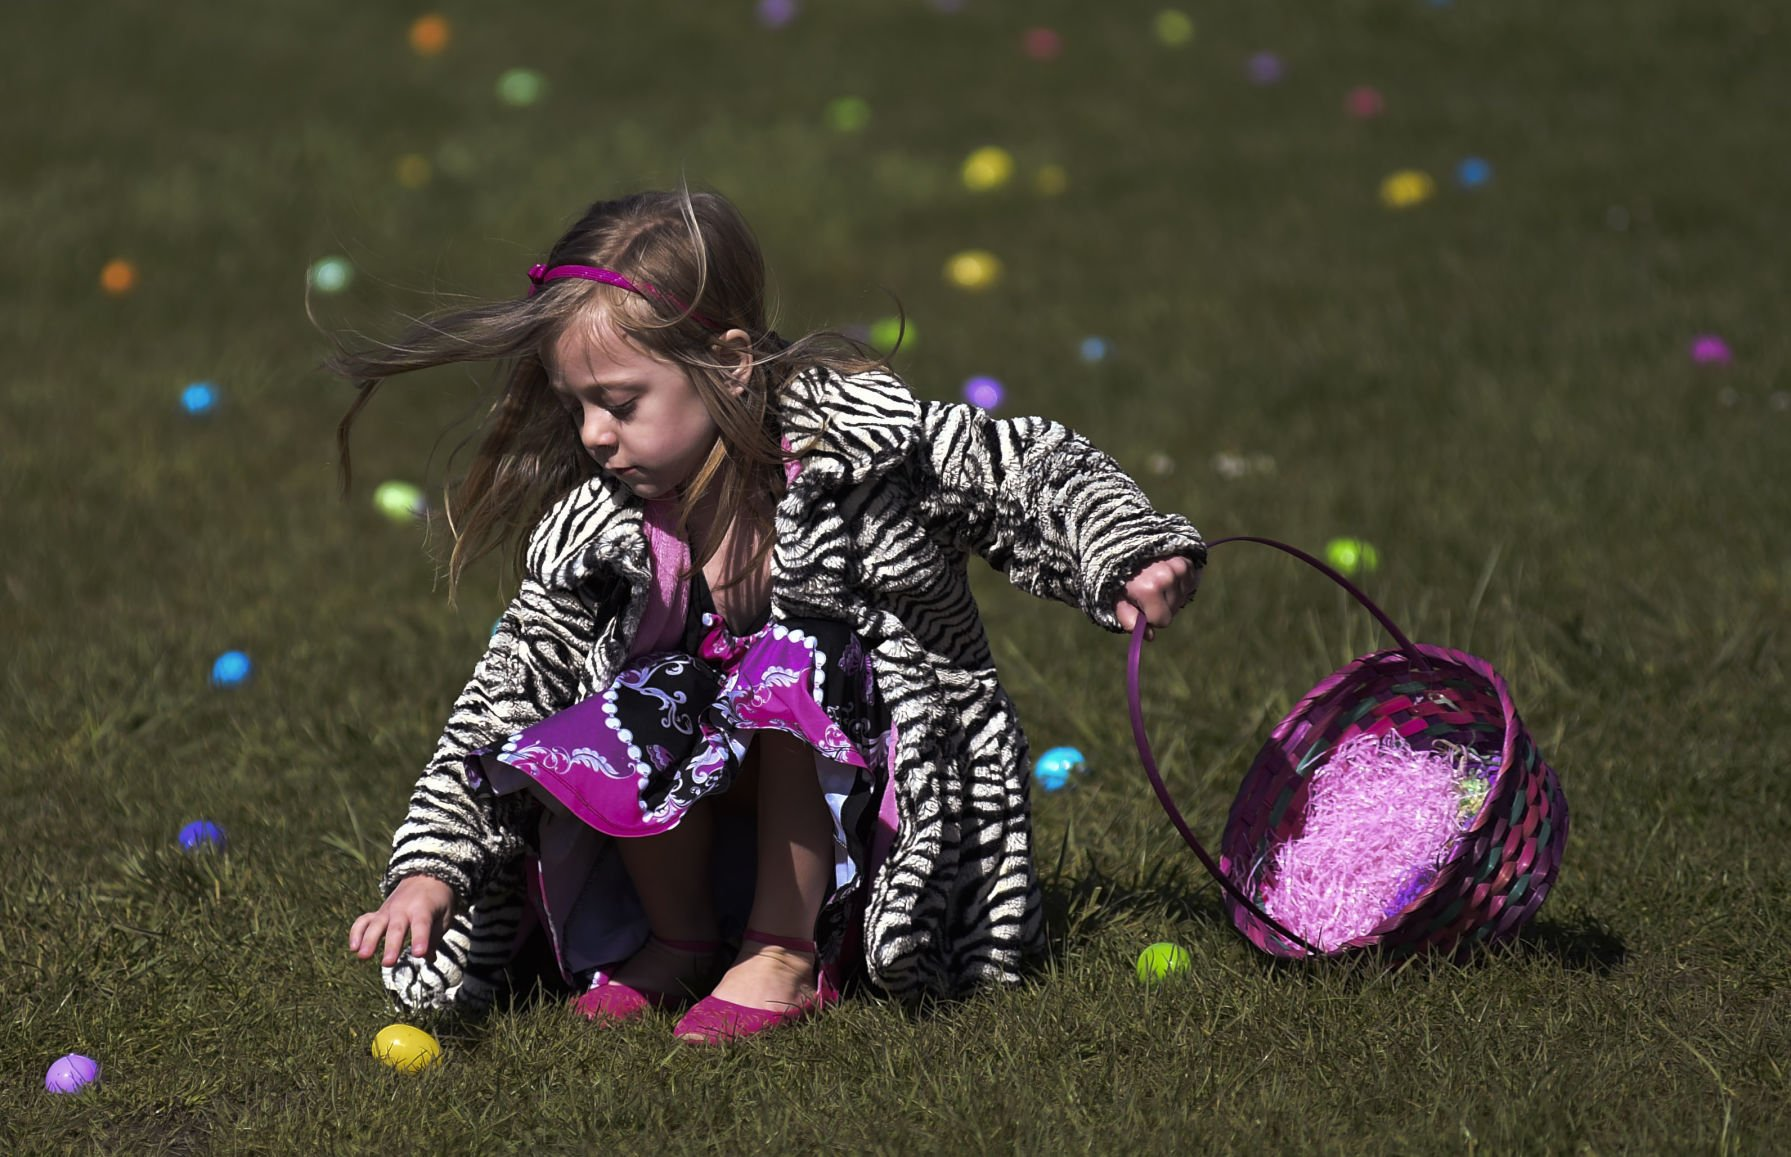 Easter egg hunt back on after fugitive's arrest 11:47 am Fri